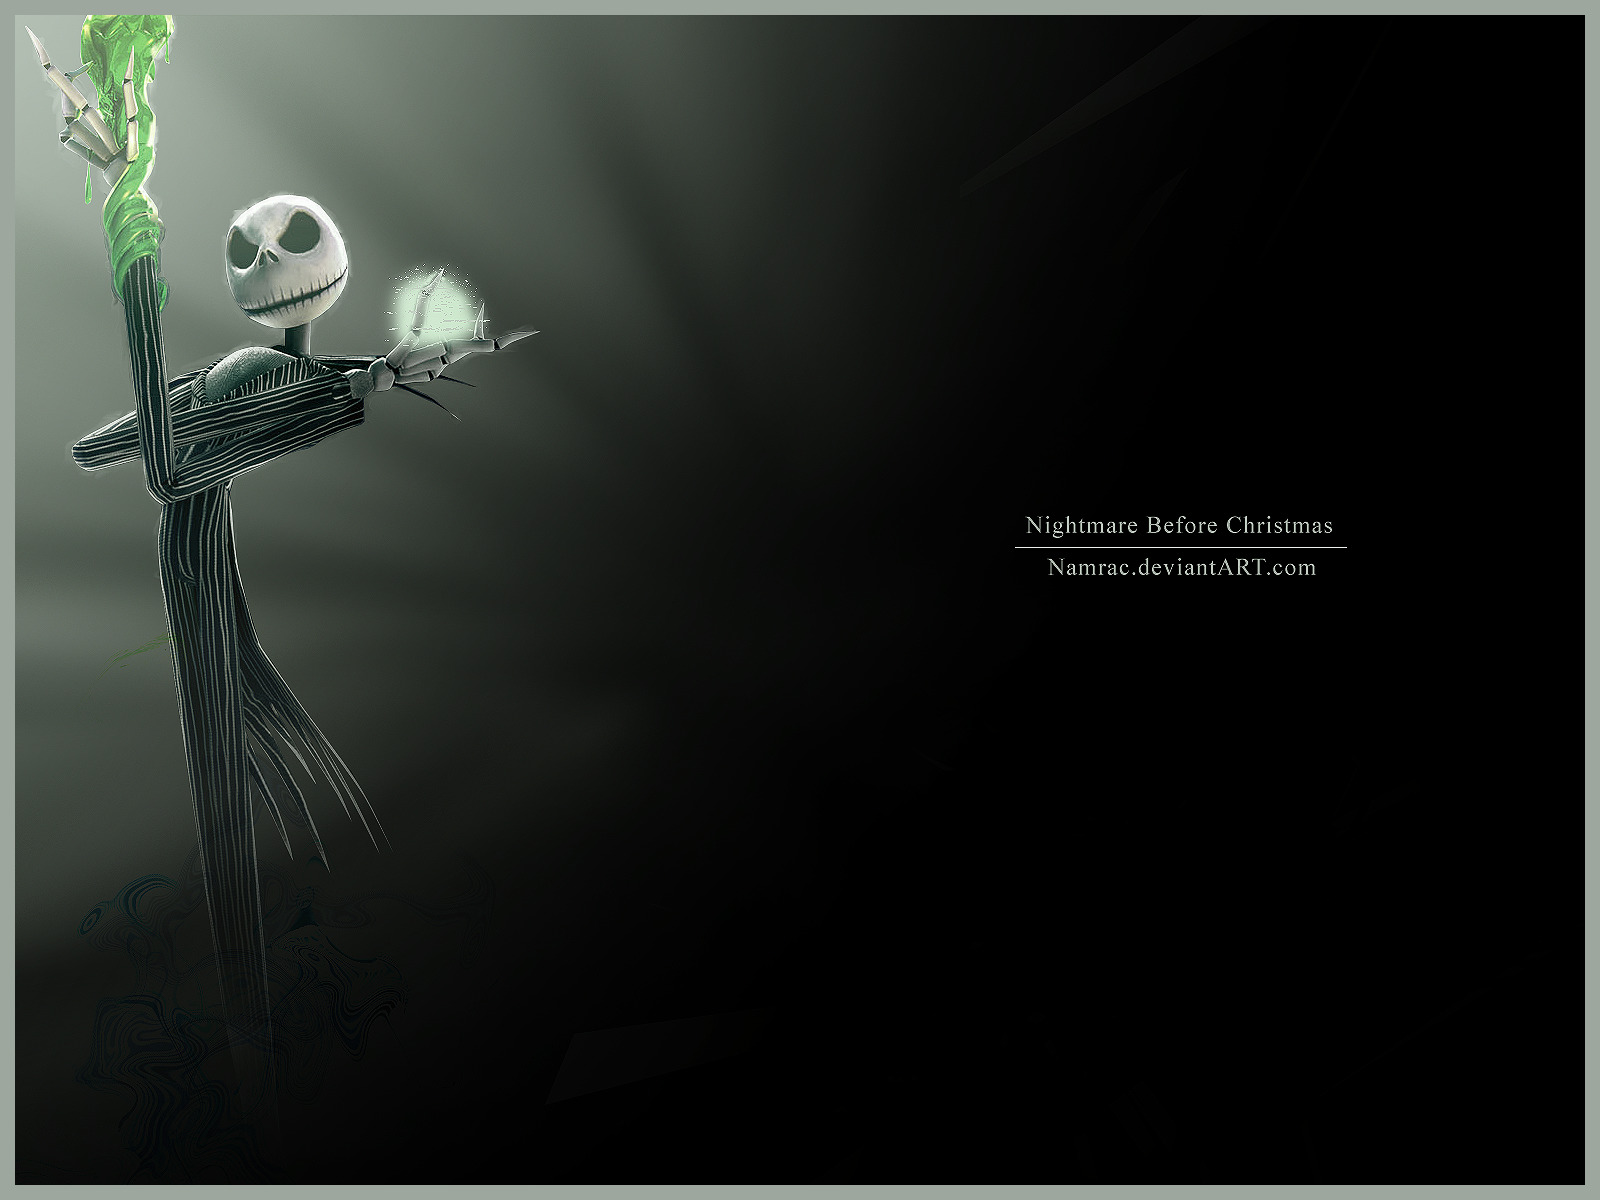 The Nightmare Before Christmas HD Wallpaper